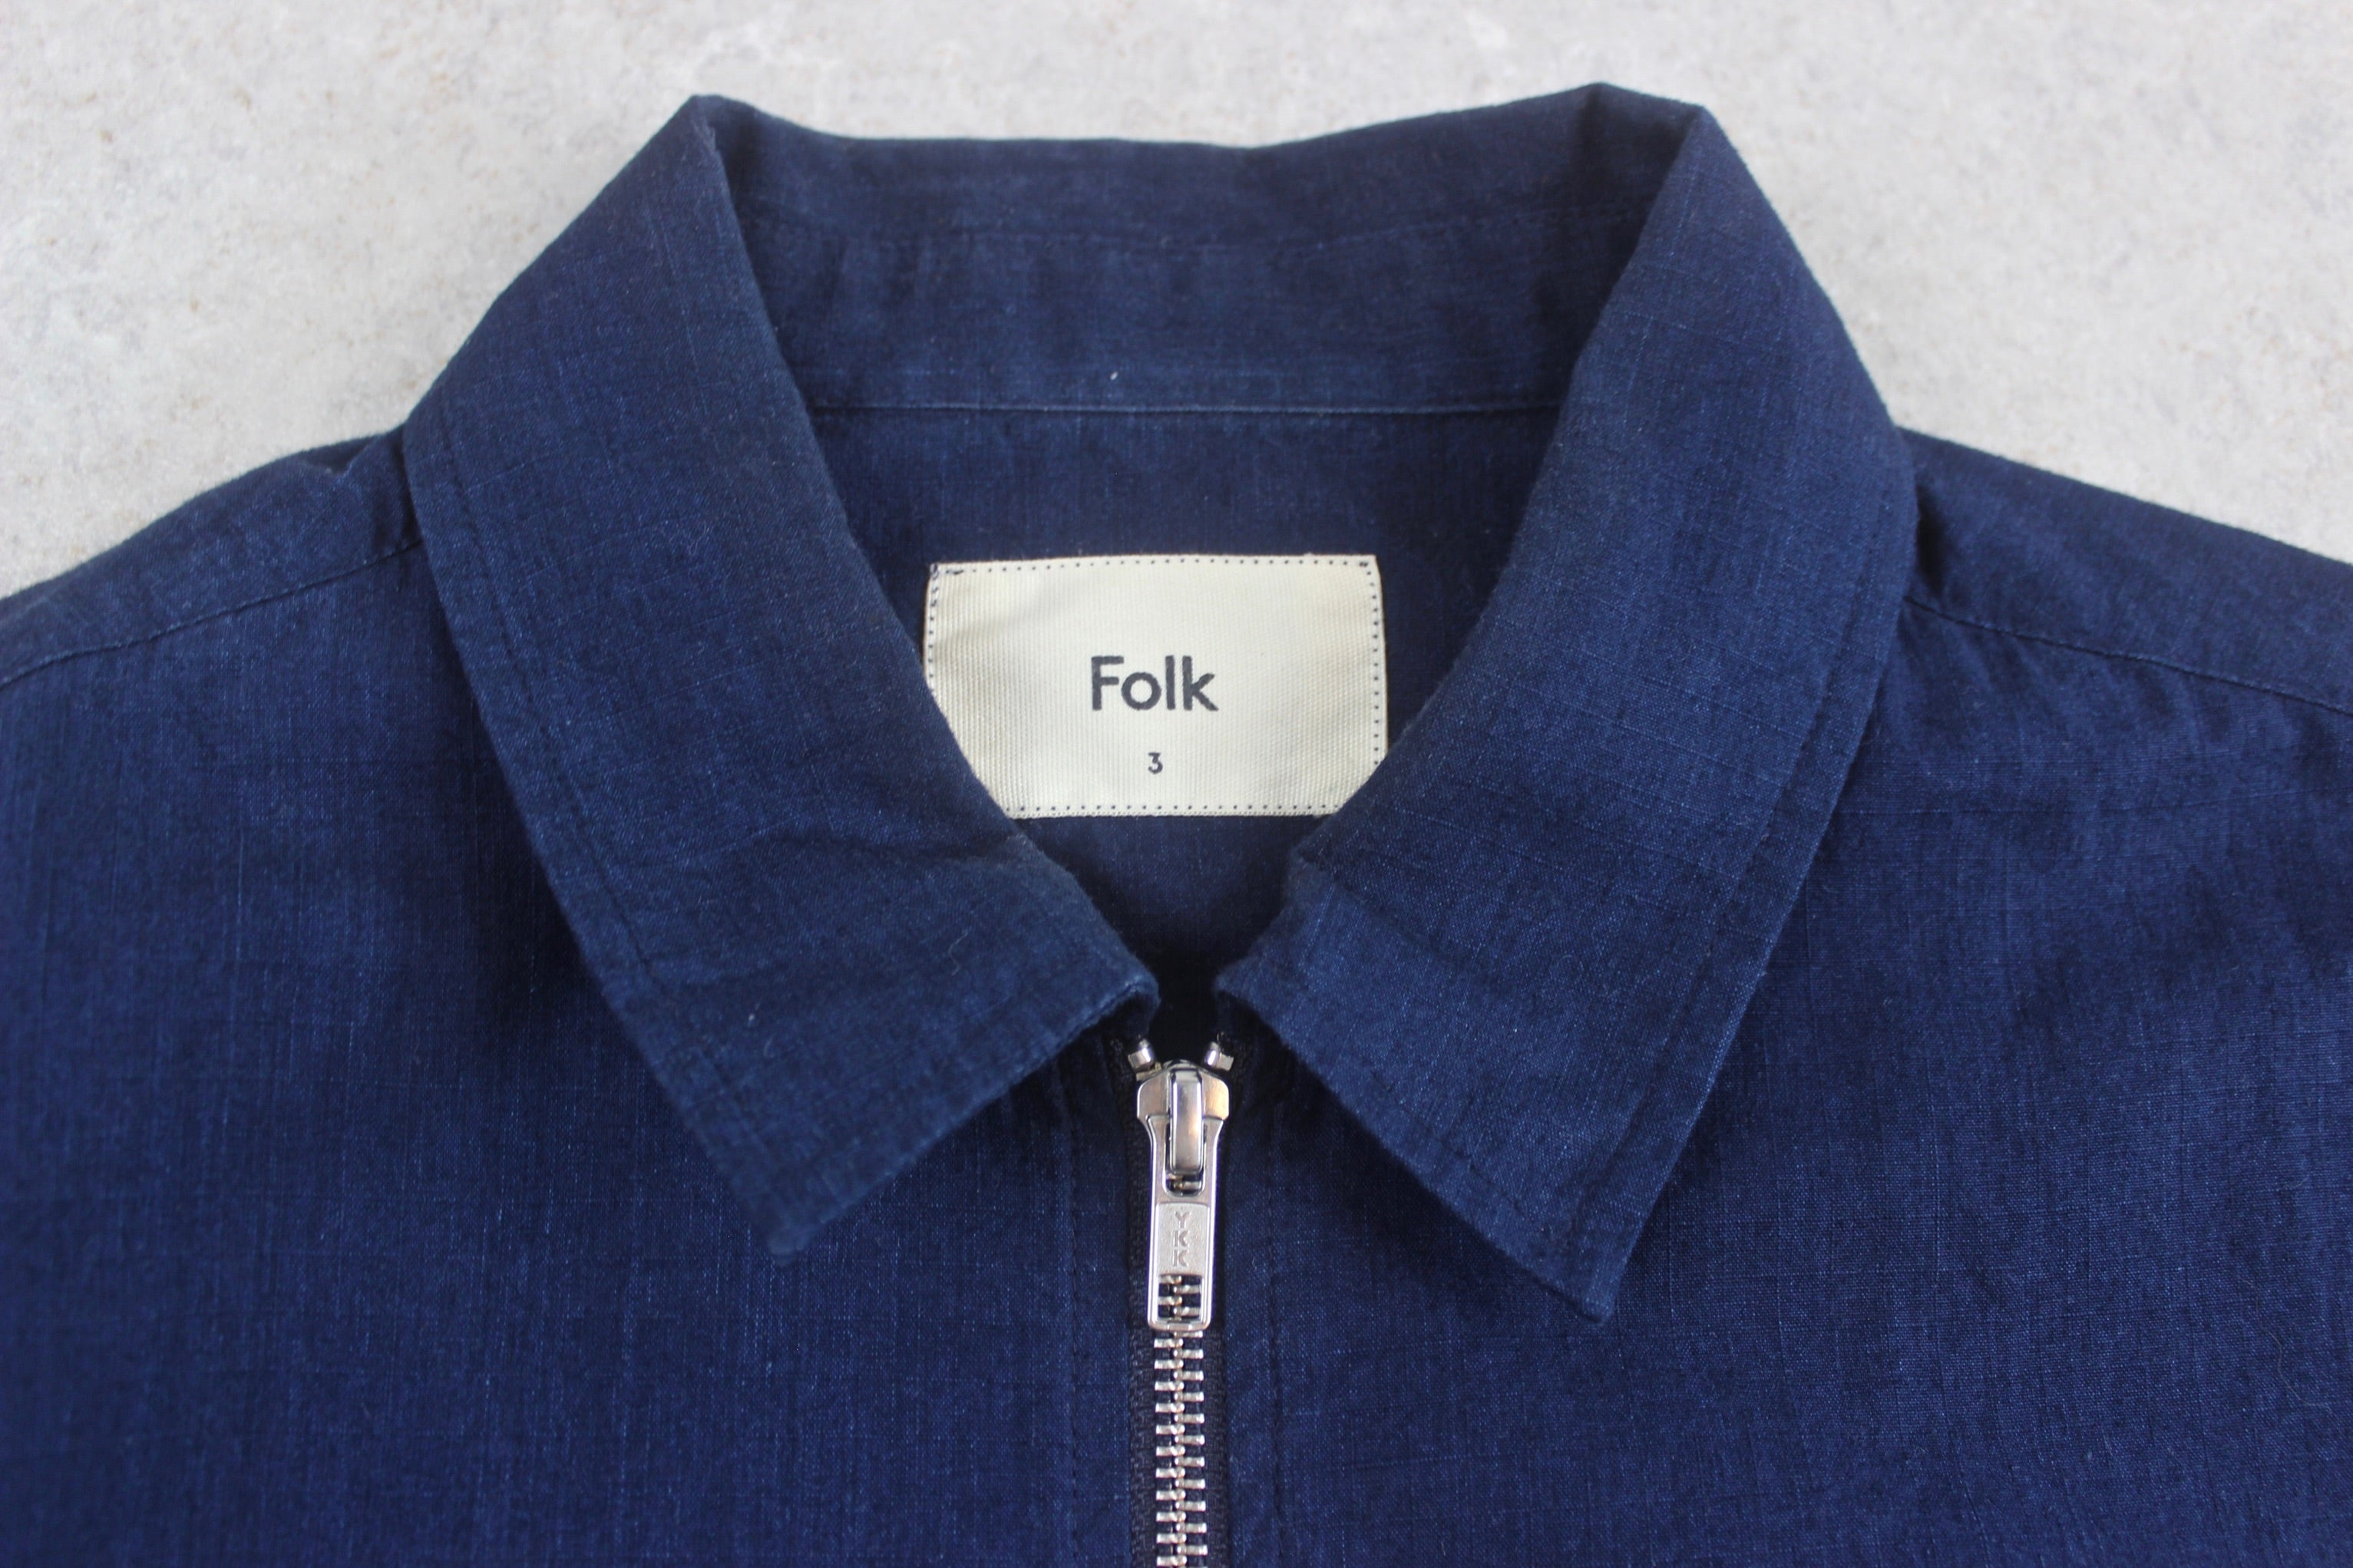 Folk - Jacket - Navy Blue - 3/Medium